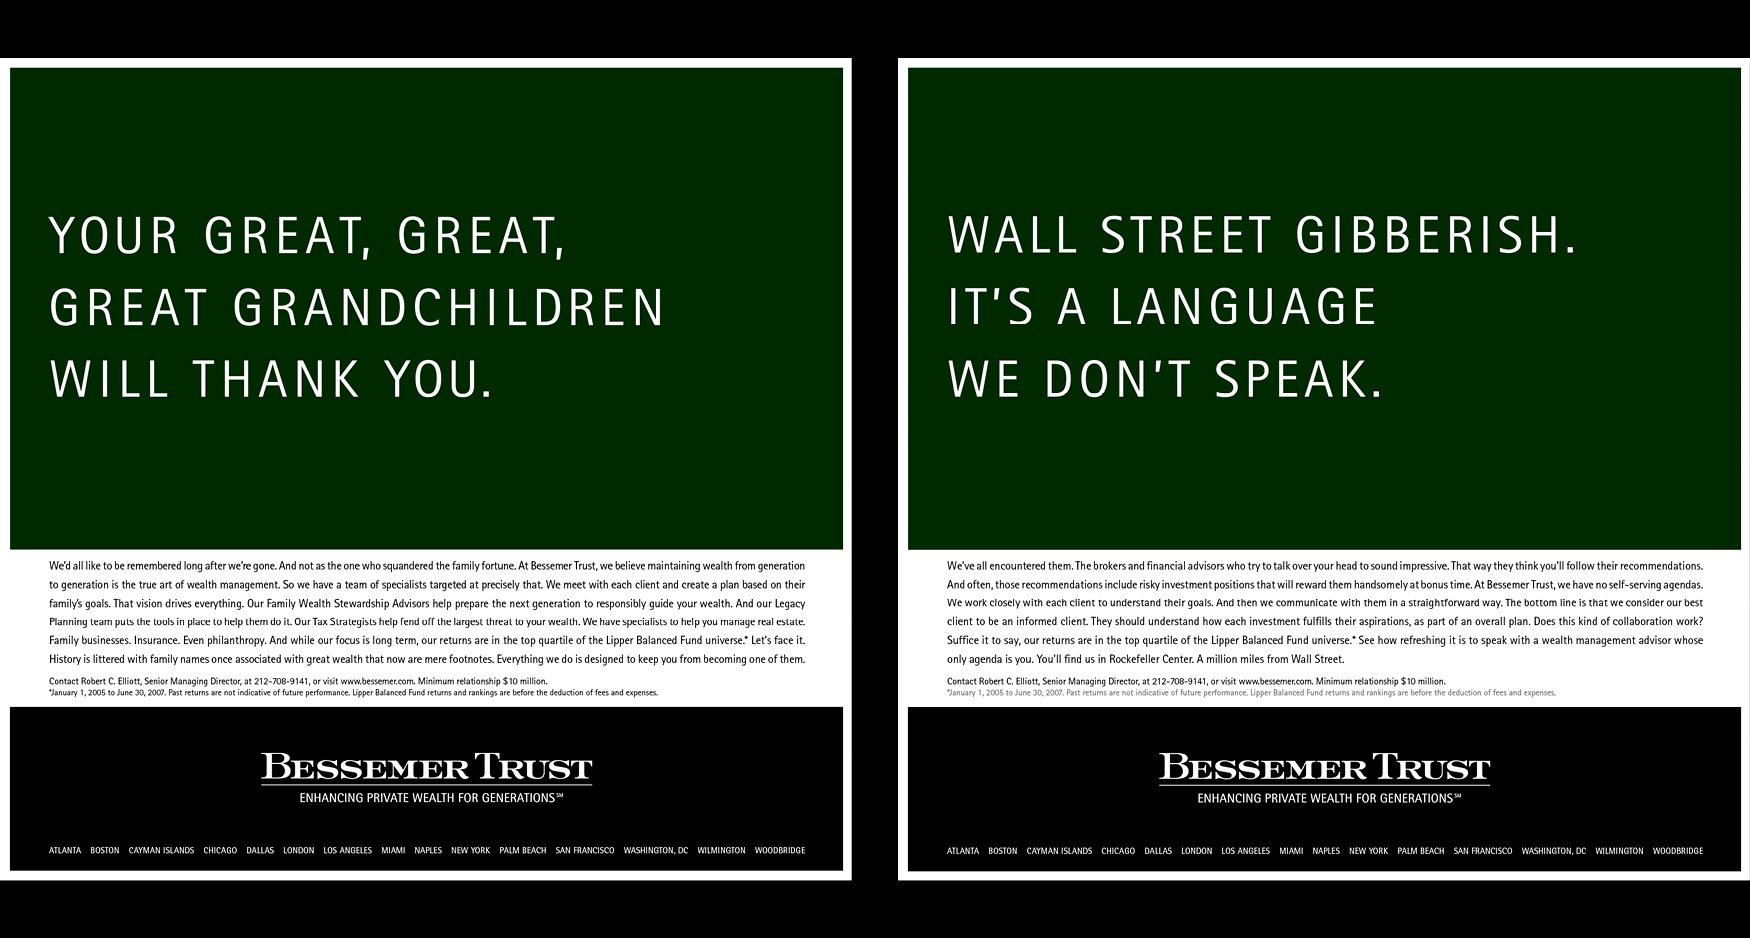 BP Large Images22 - BESSEMER TRUST - WEALTH MANAGEMENT CAMPAIGN